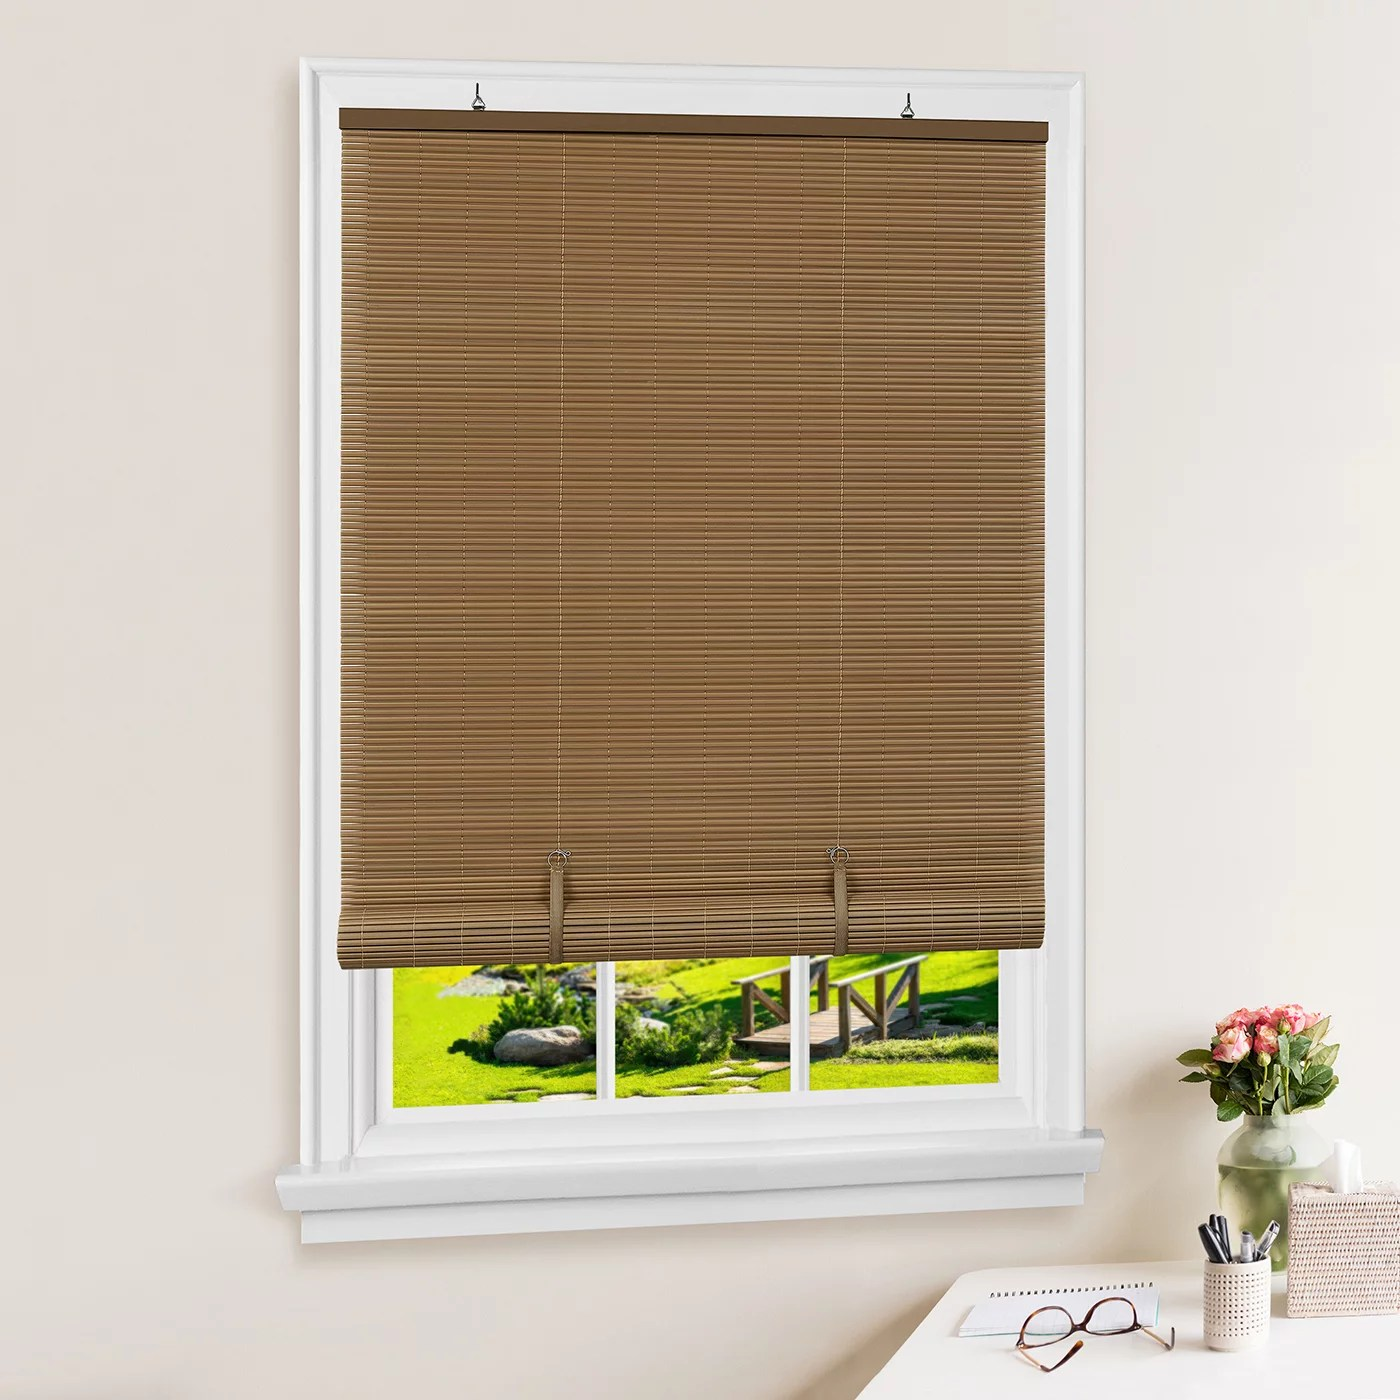 oval cordless outdoor rollup light filtering window blinds roller shades